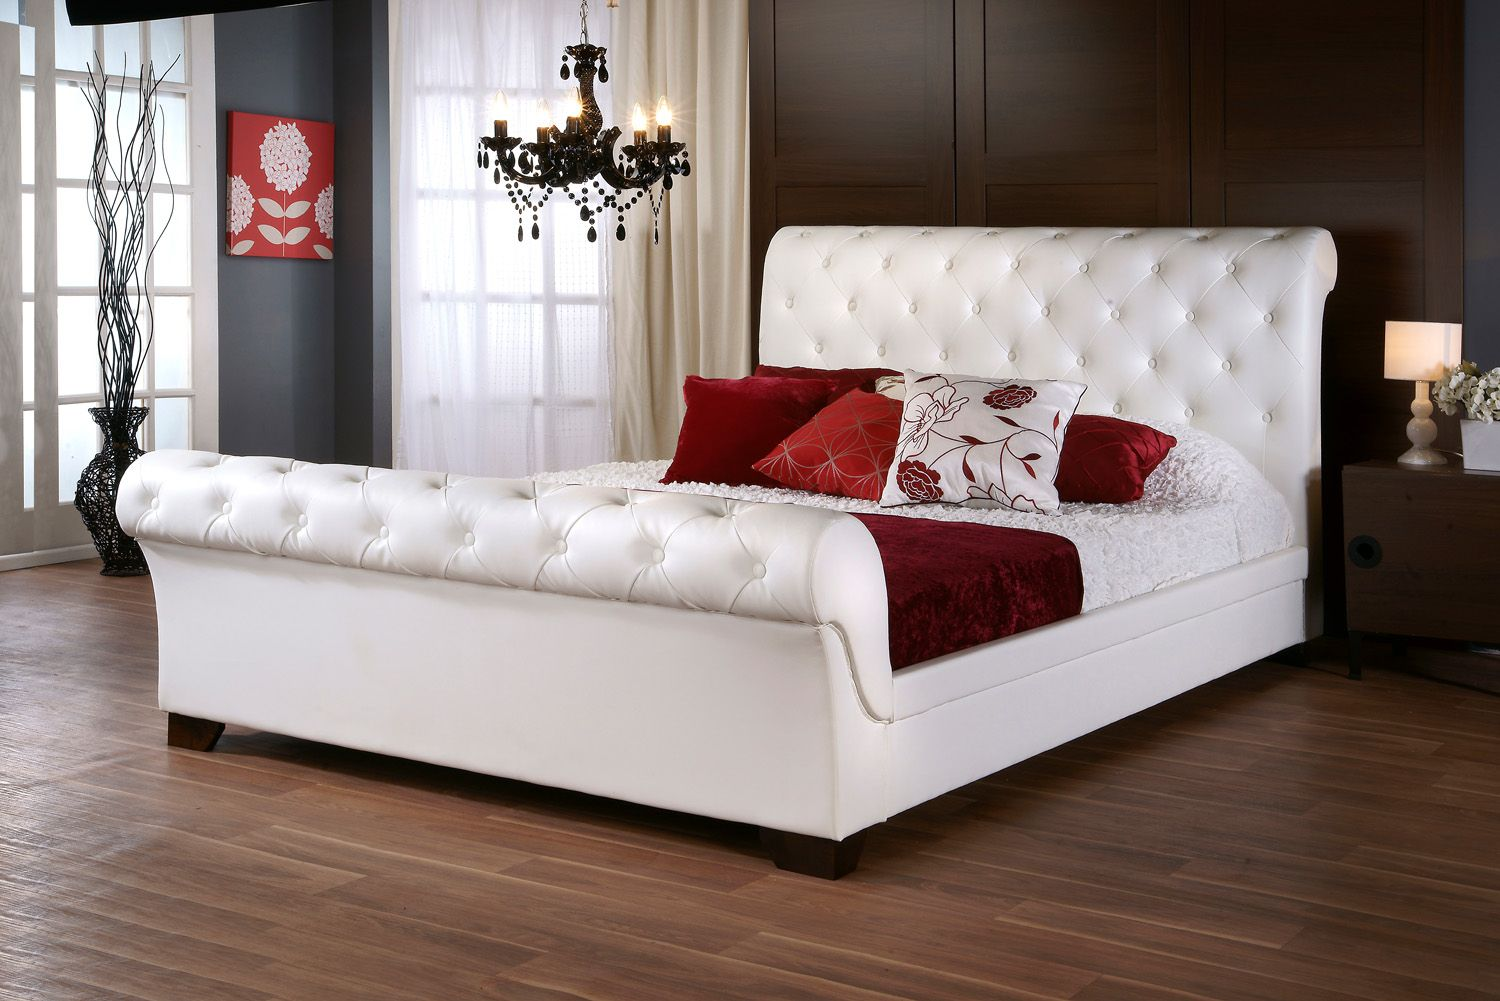 6ft Chesterfield White Faux Leather Bed Frame - £749.95 - LIMITED ...